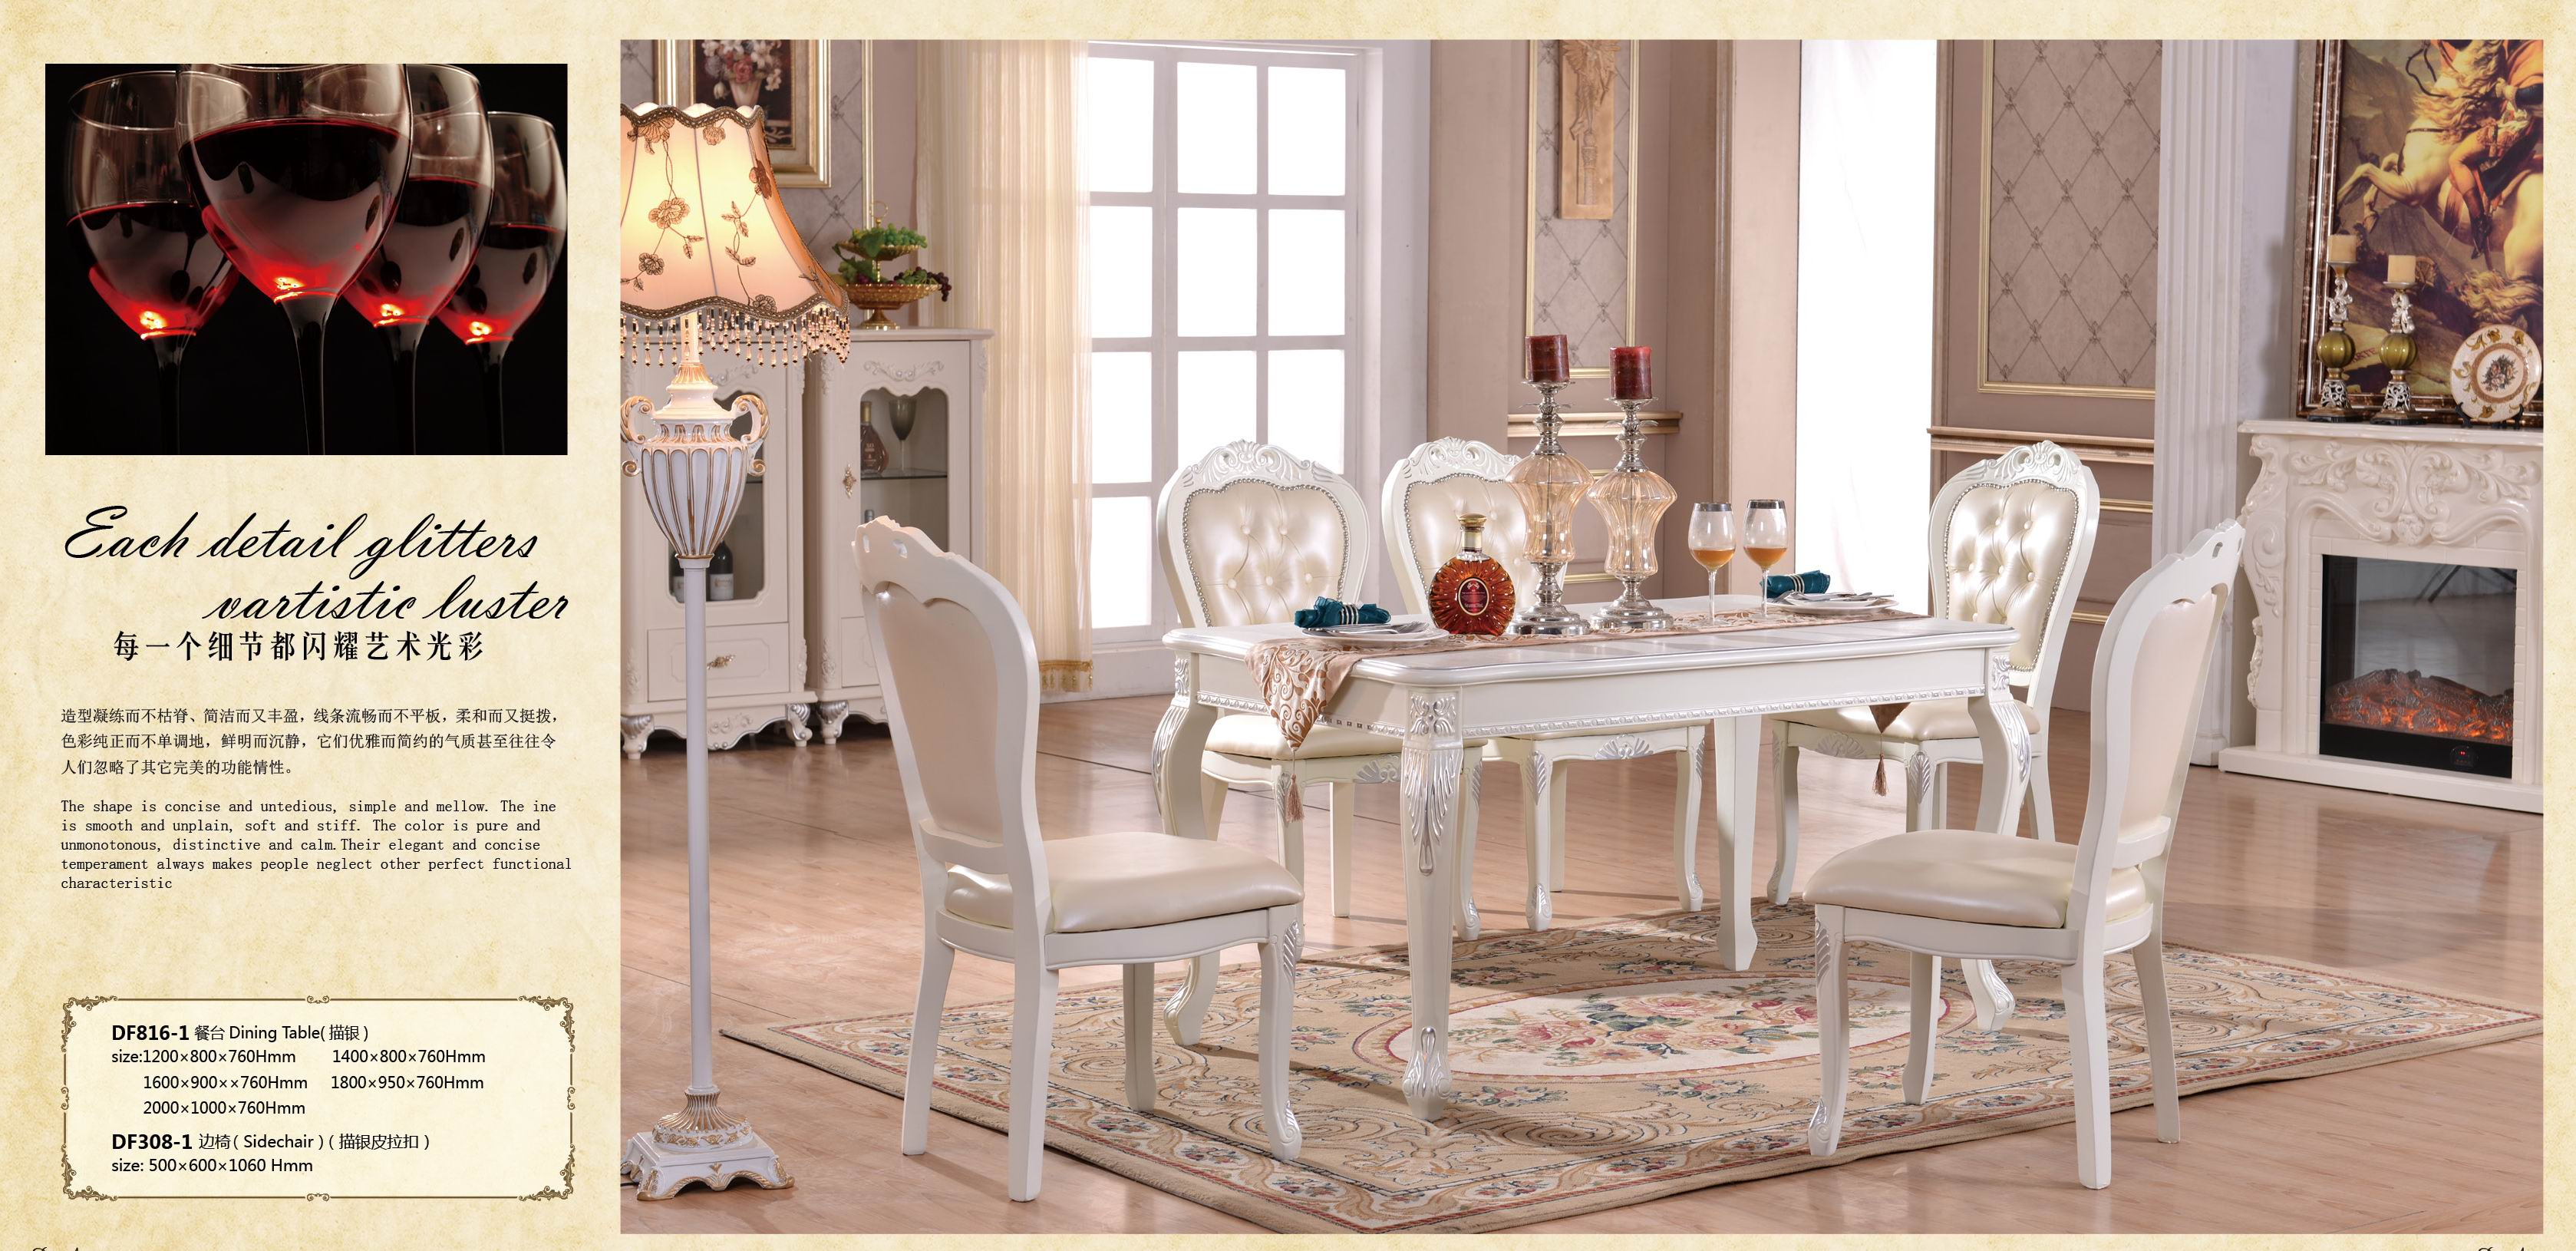 Dinner set solid wood carving table and chairs.jpg